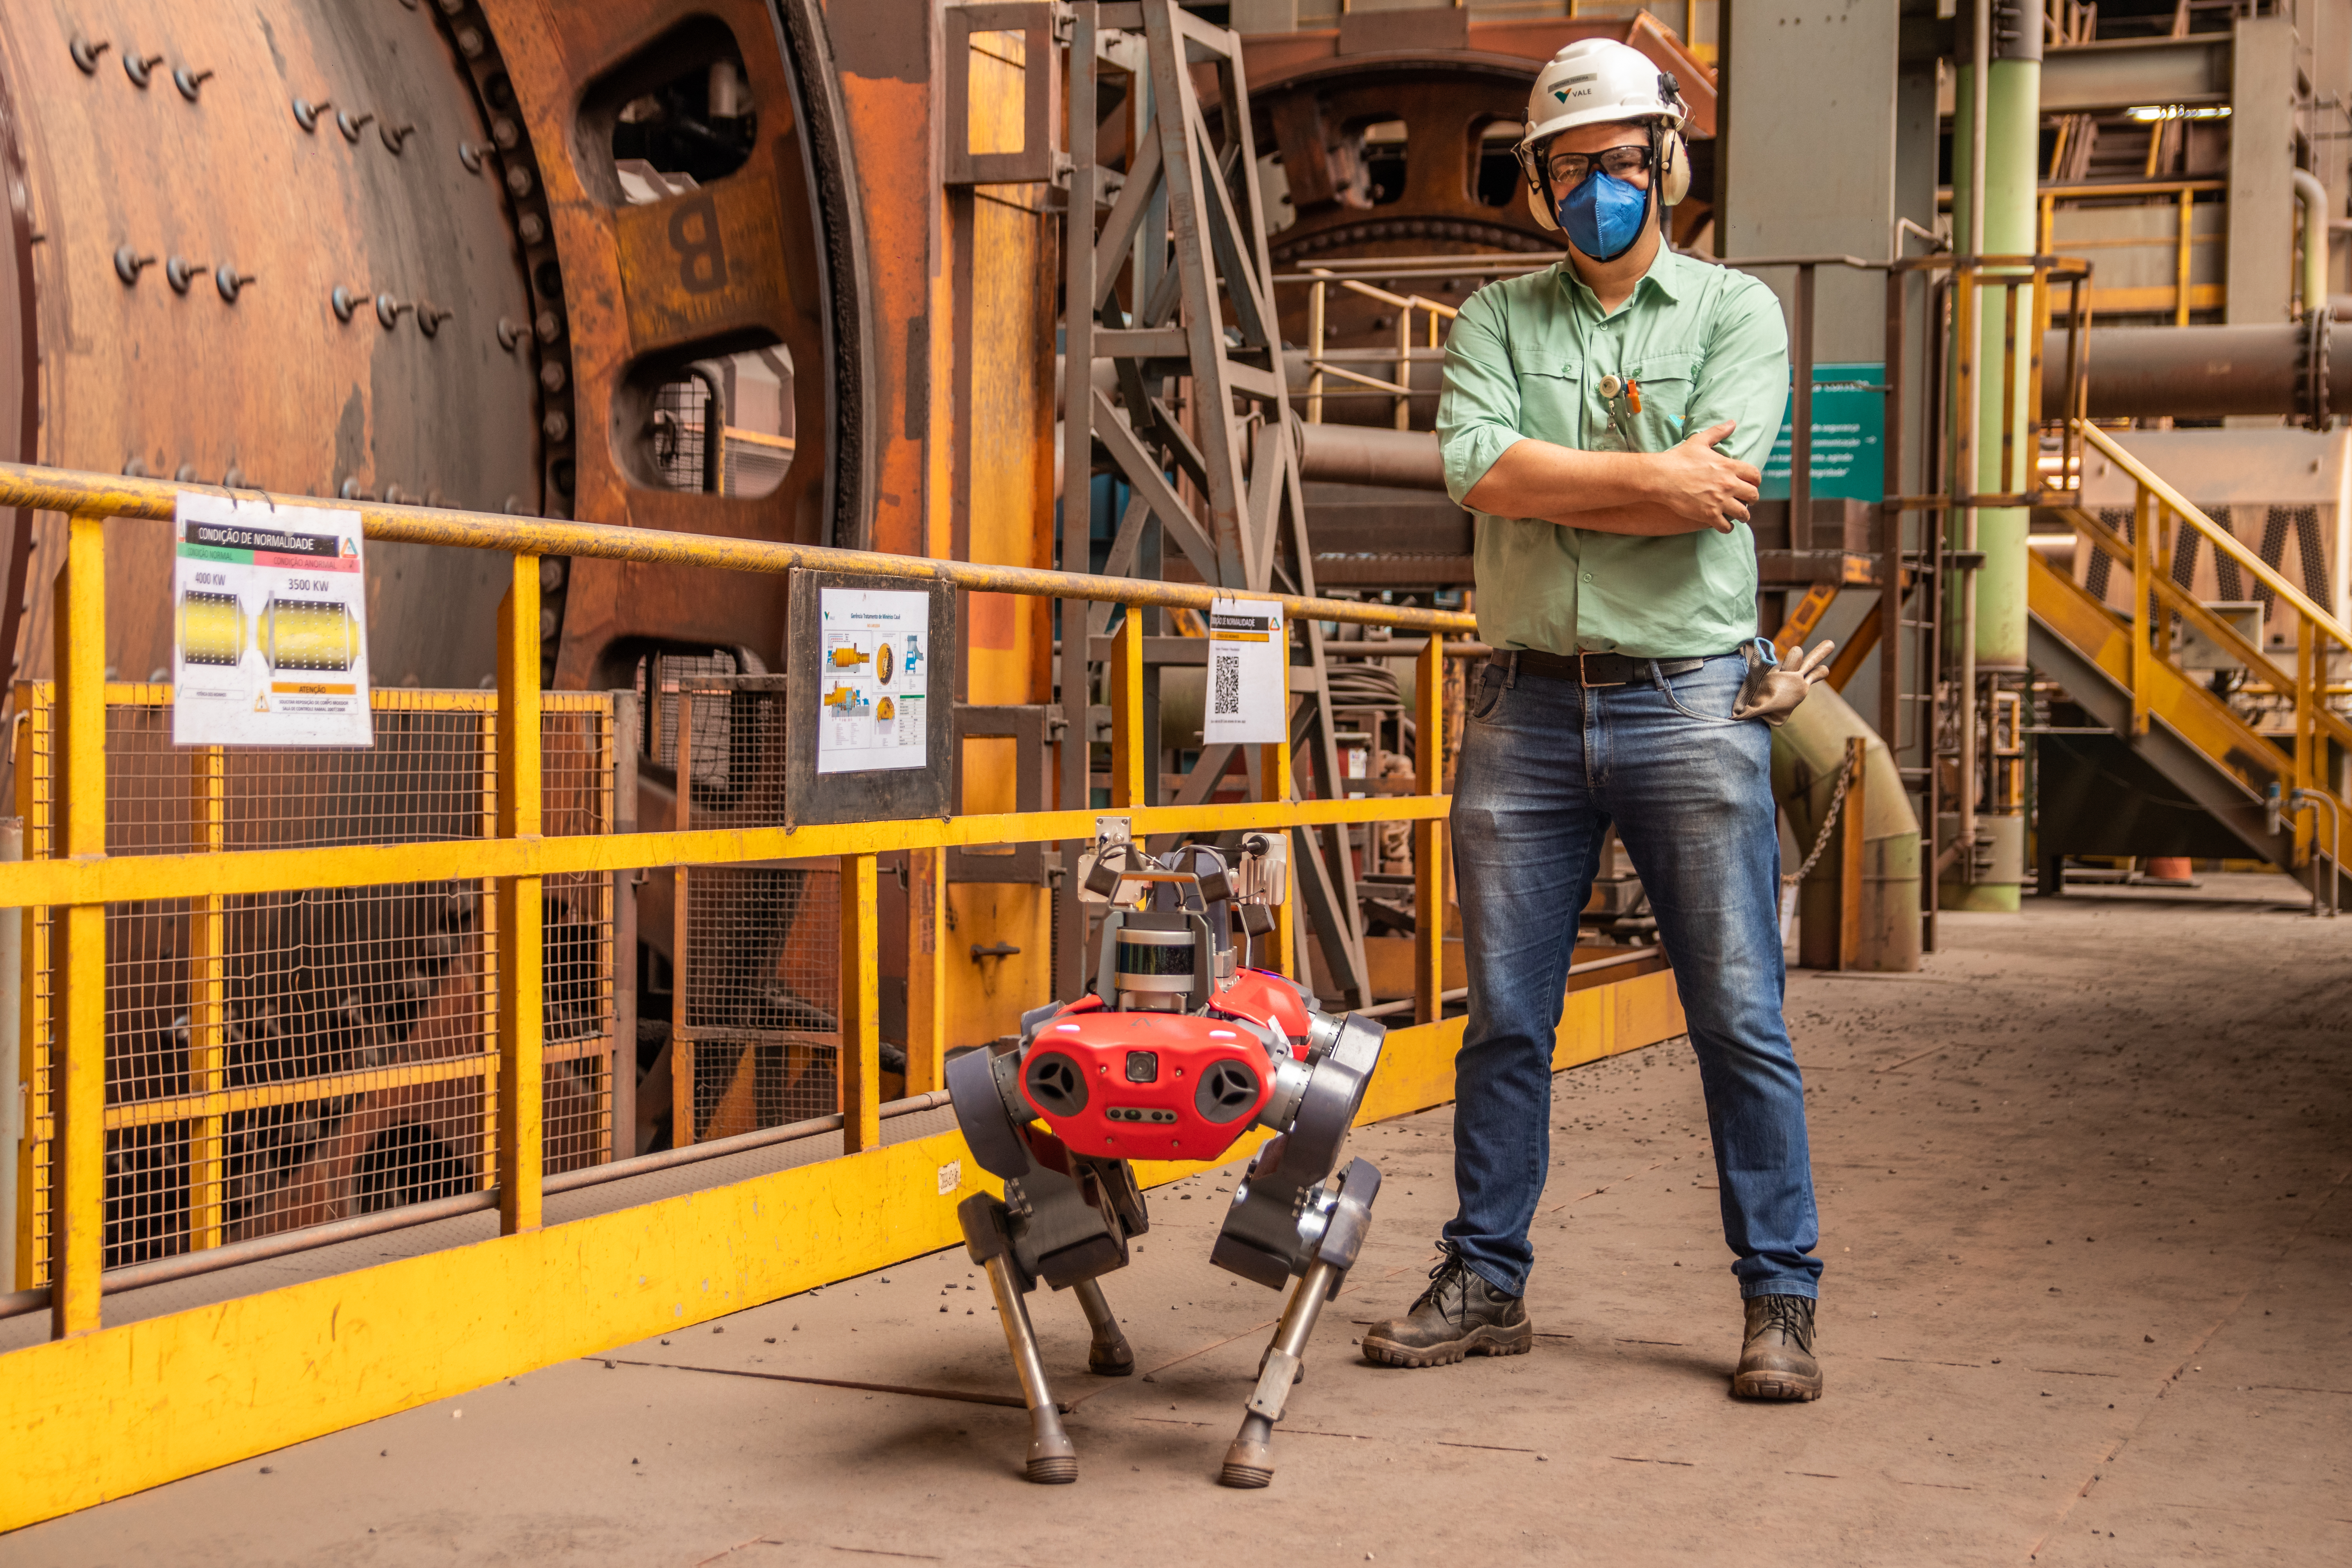 Vale uses robots to remove employees from risky situations